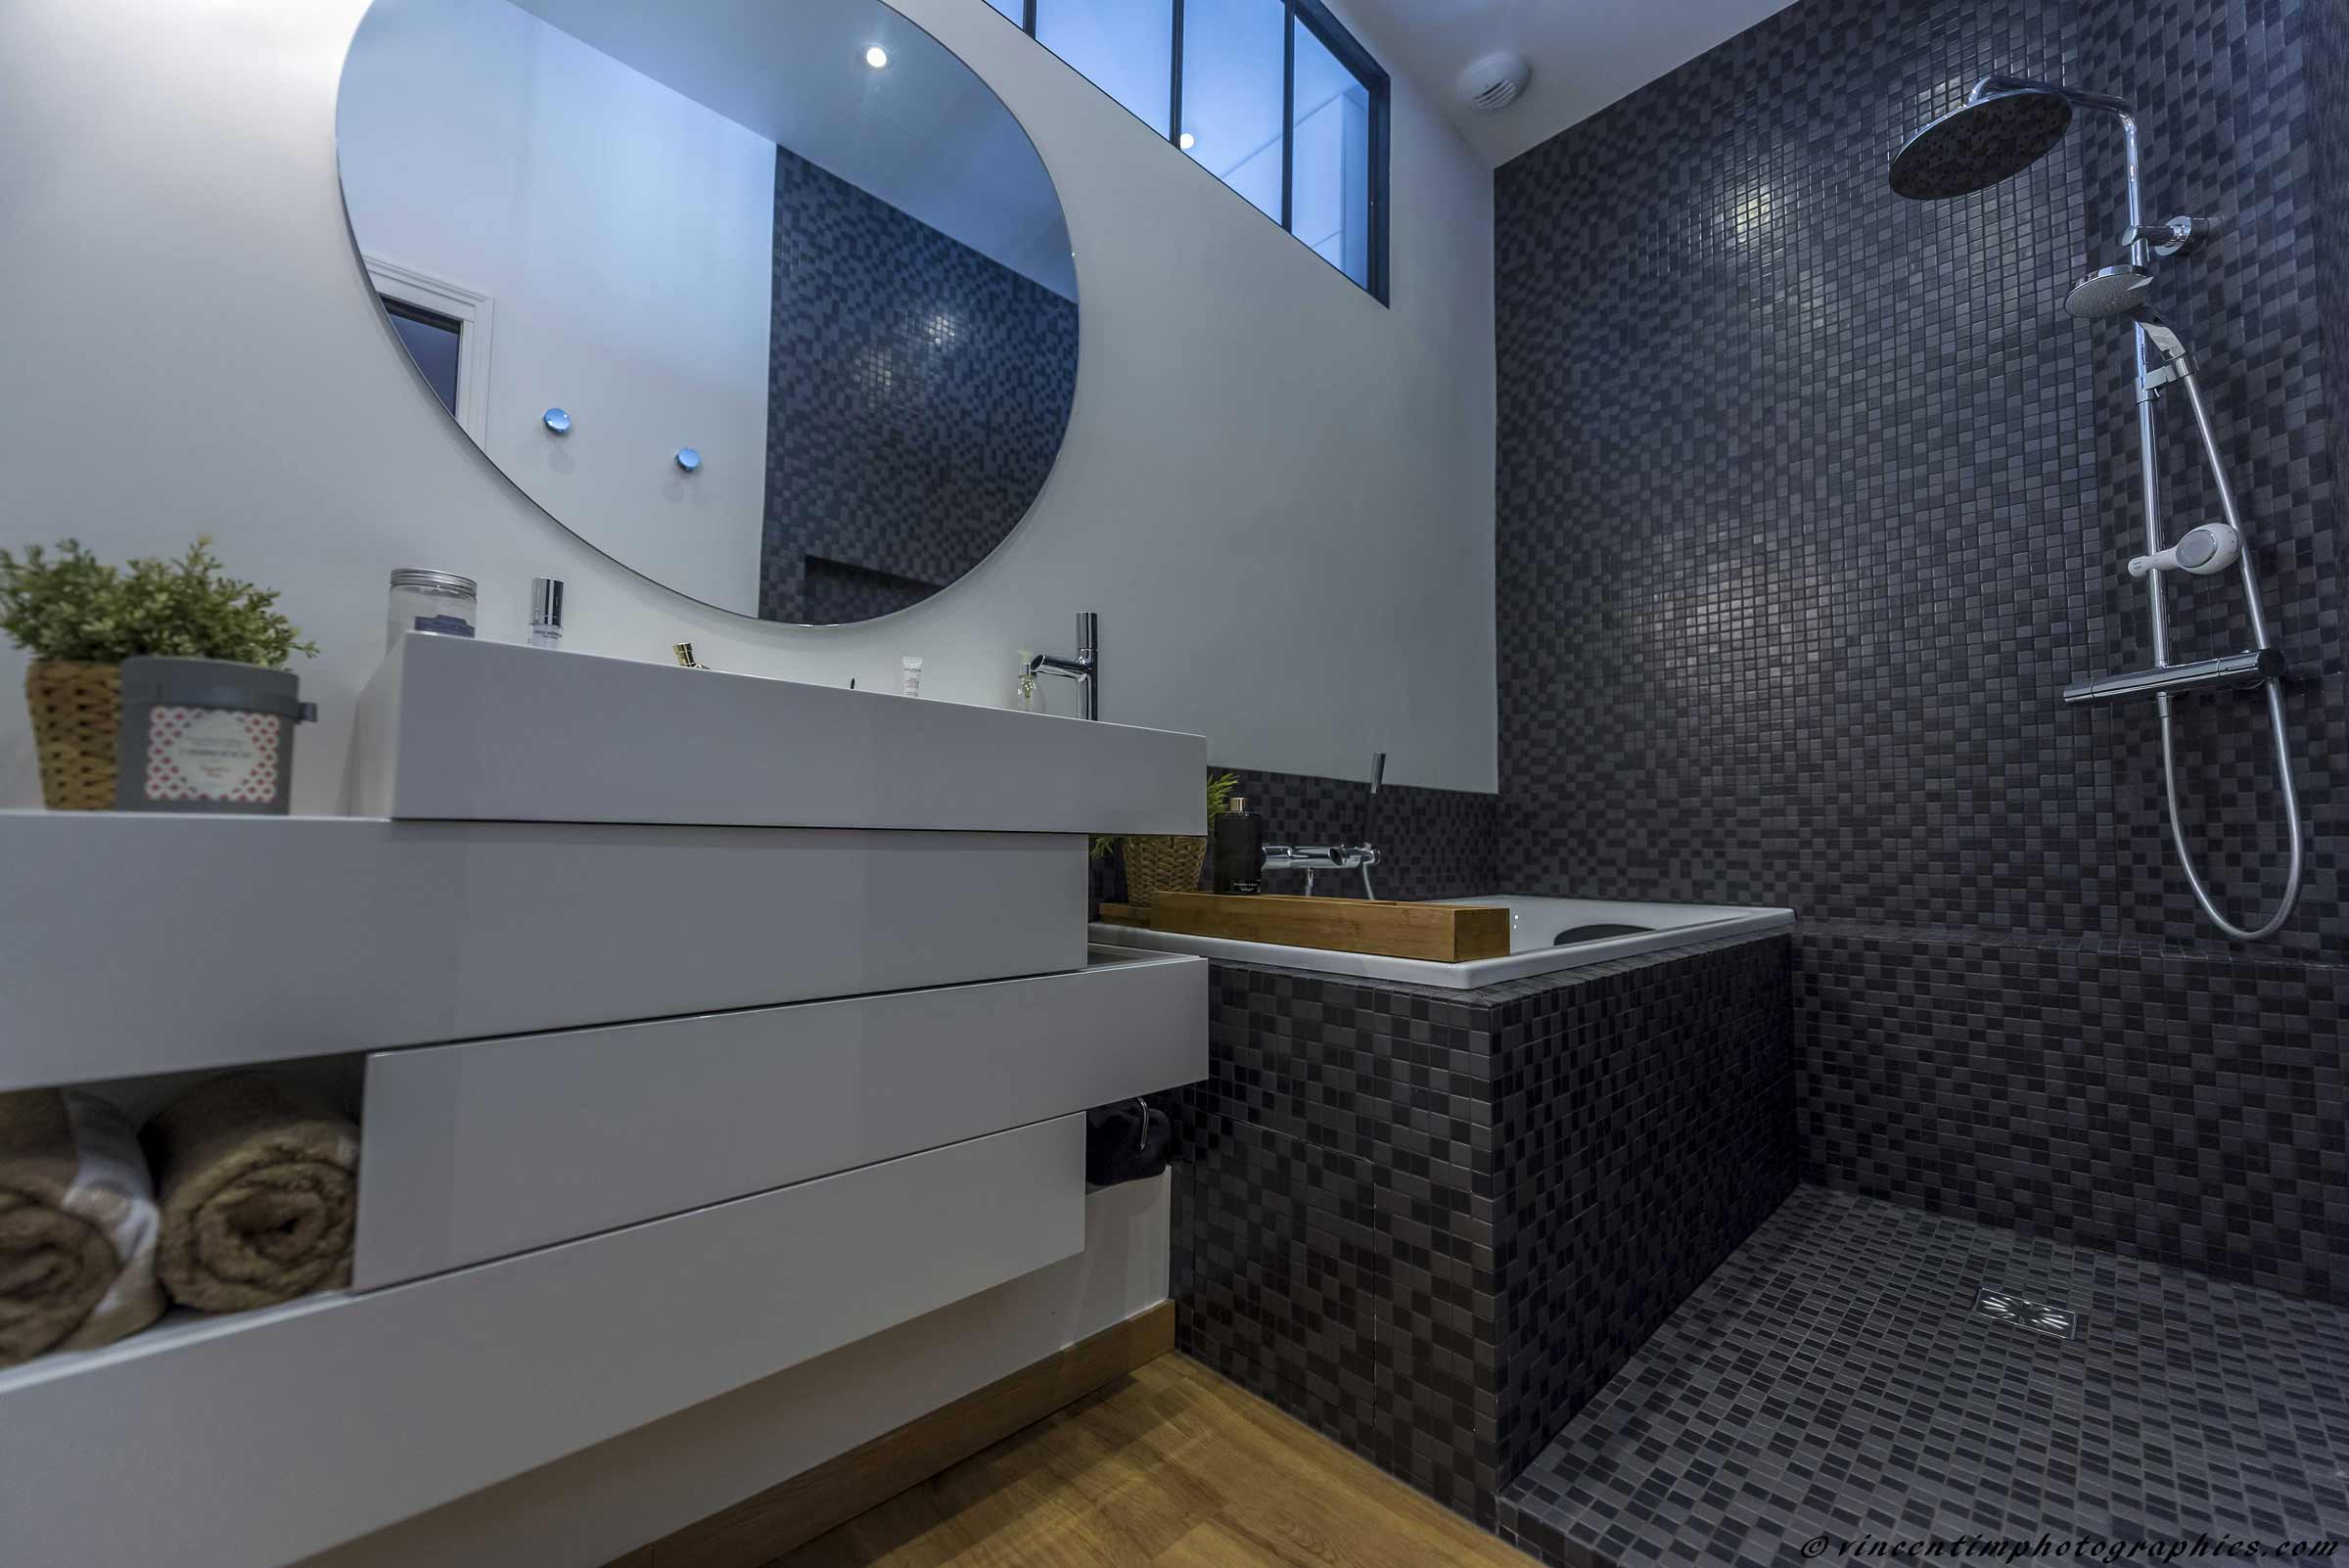 mosaique baignoire baignoire en lot et douche mosaque with mosaique baignoire carrelage. Black Bedroom Furniture Sets. Home Design Ideas